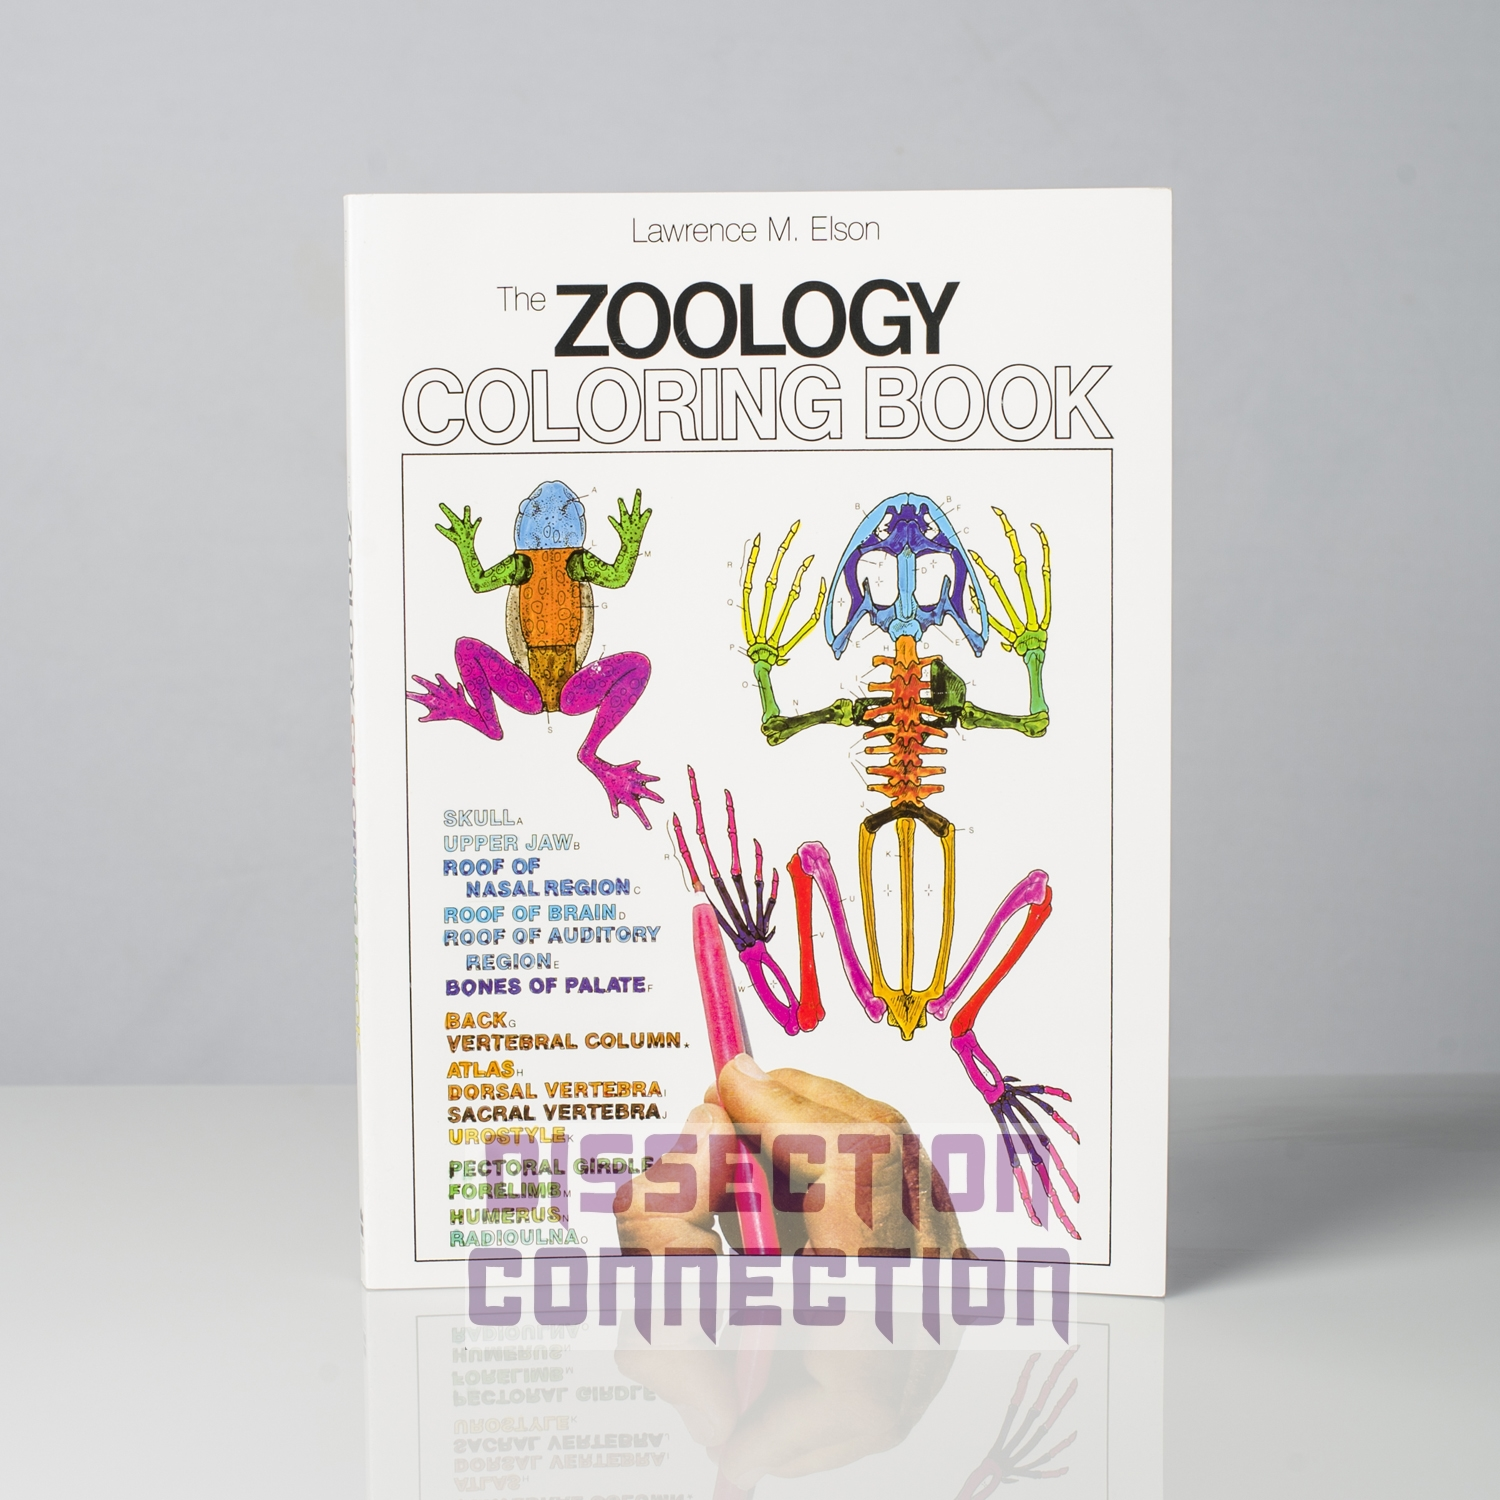 elsons zoology anatomy colouring book - Saunders Veterinary Anatomy Coloring Book